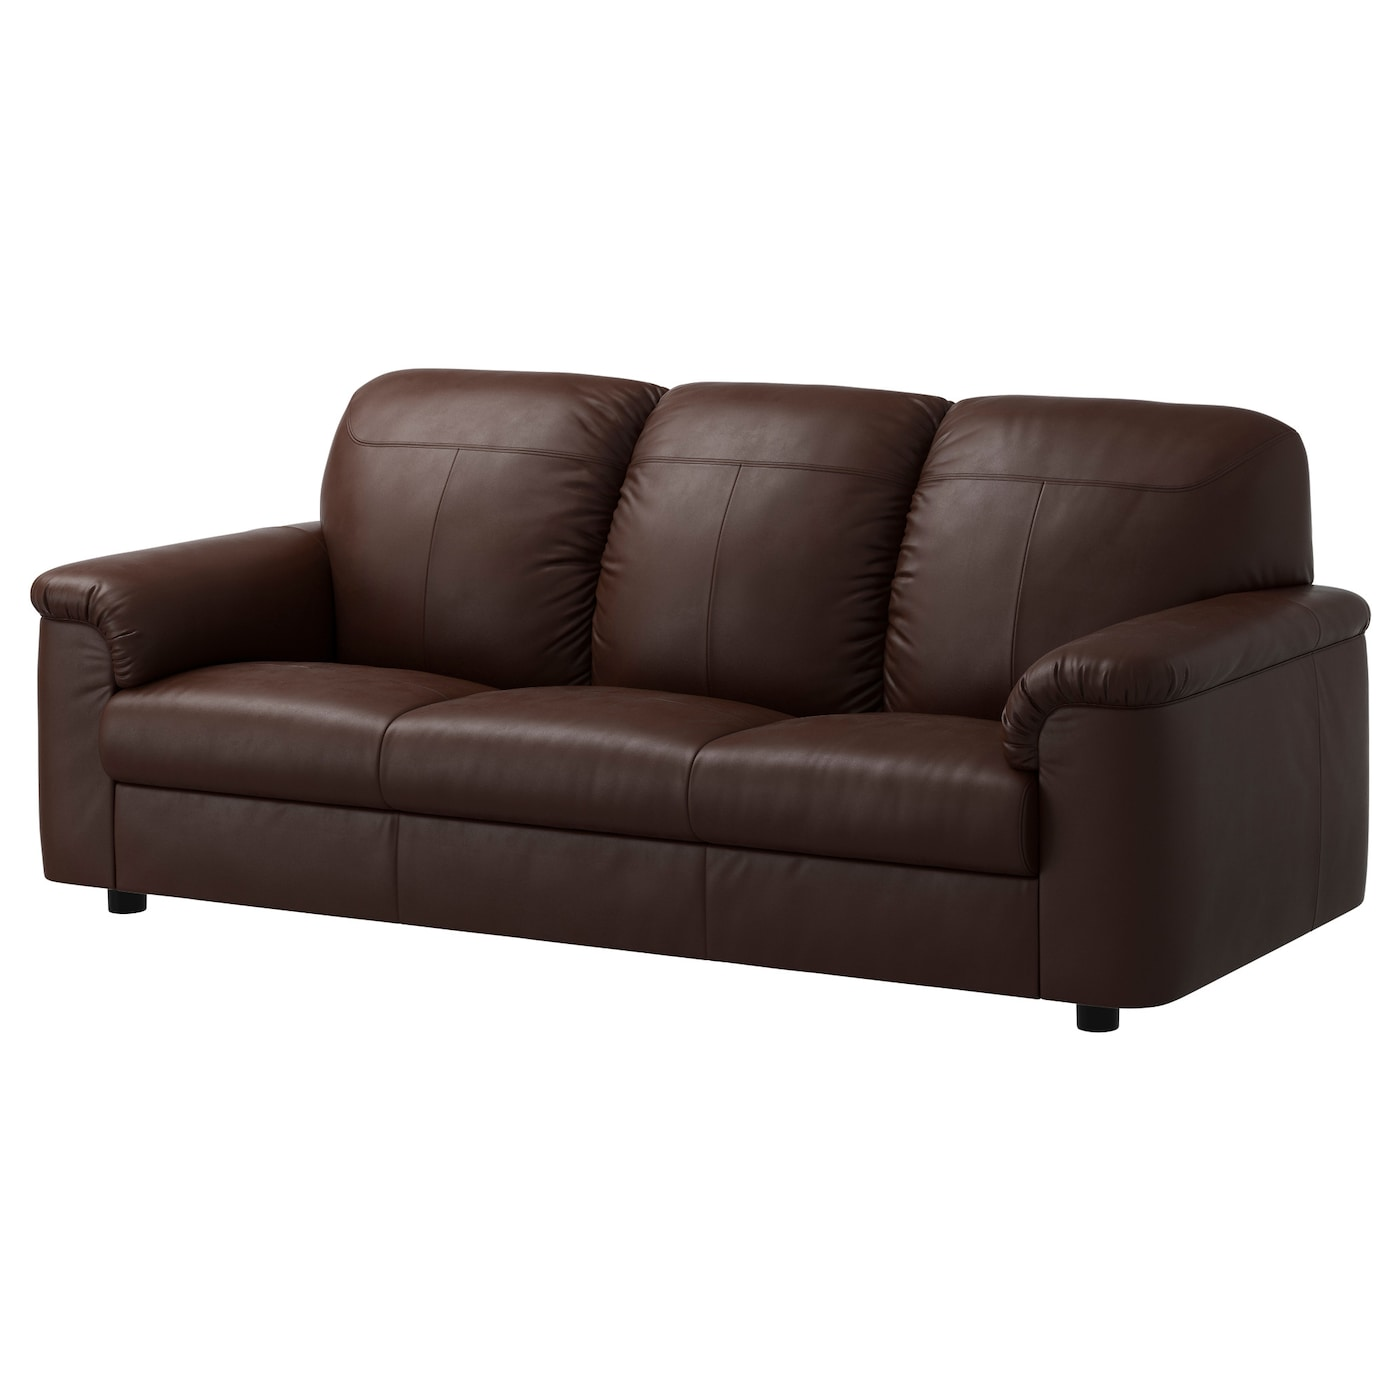 IKEA TIMSFORS three-seat sofa The armrests with extra padding are comfortable to lean against.